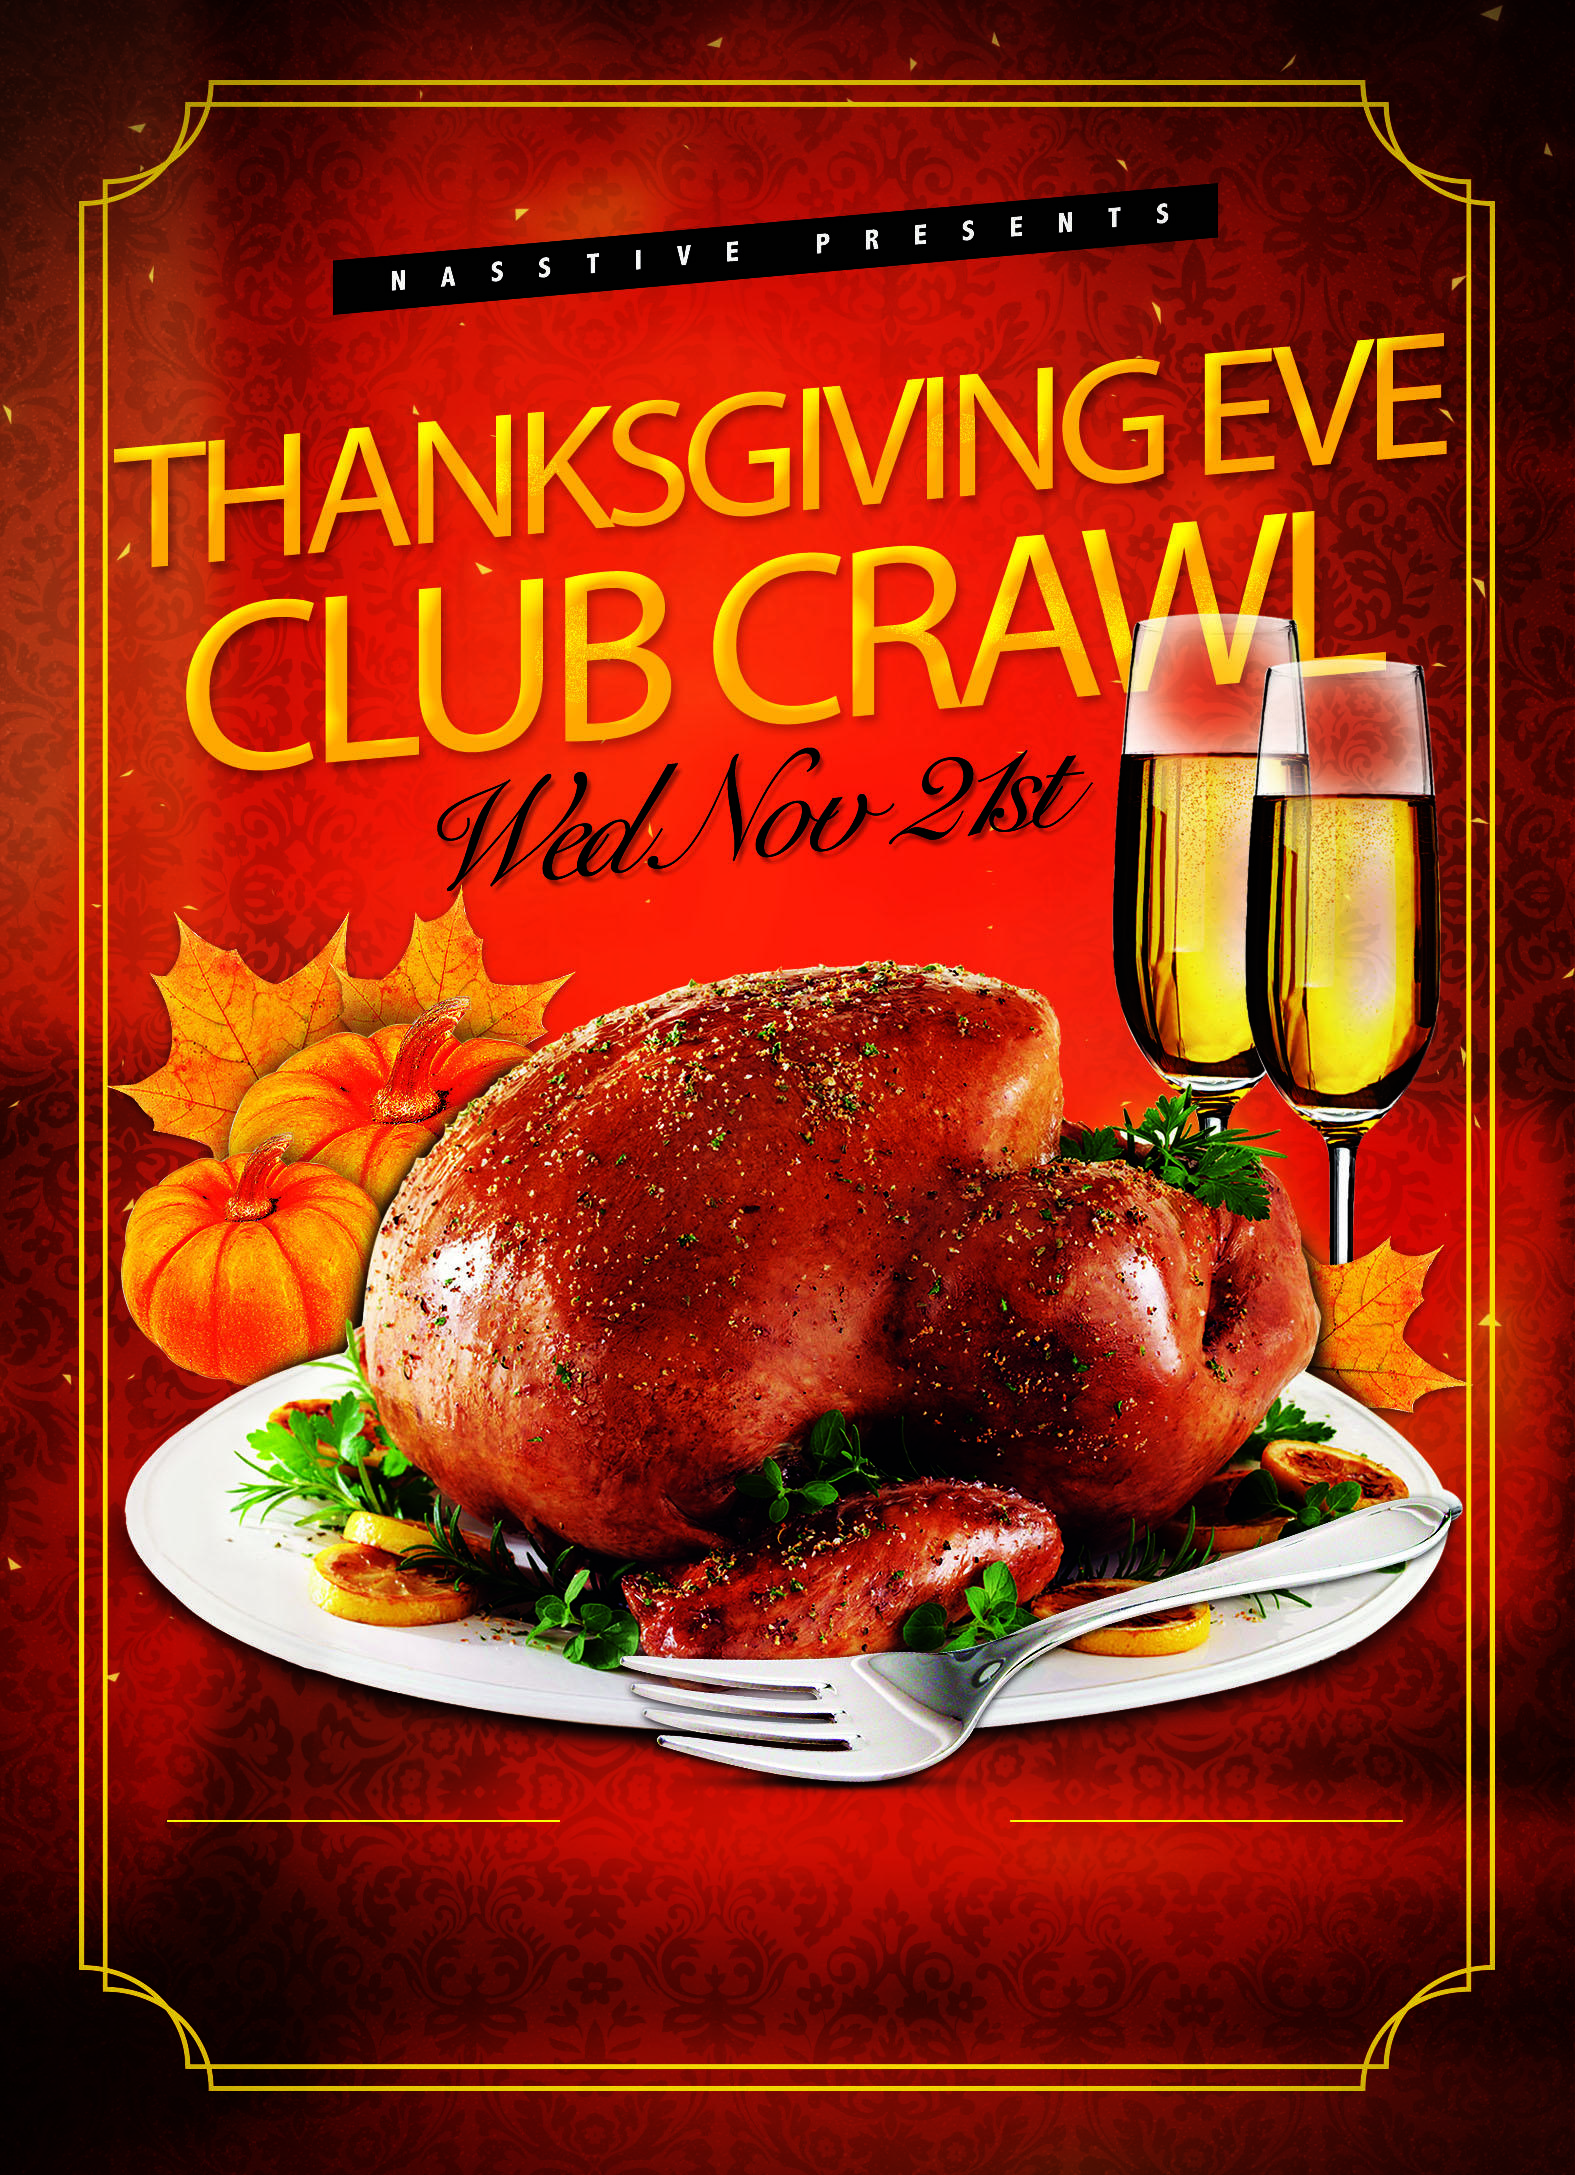 Hollywood Thanksgiving Eve Club Crawl